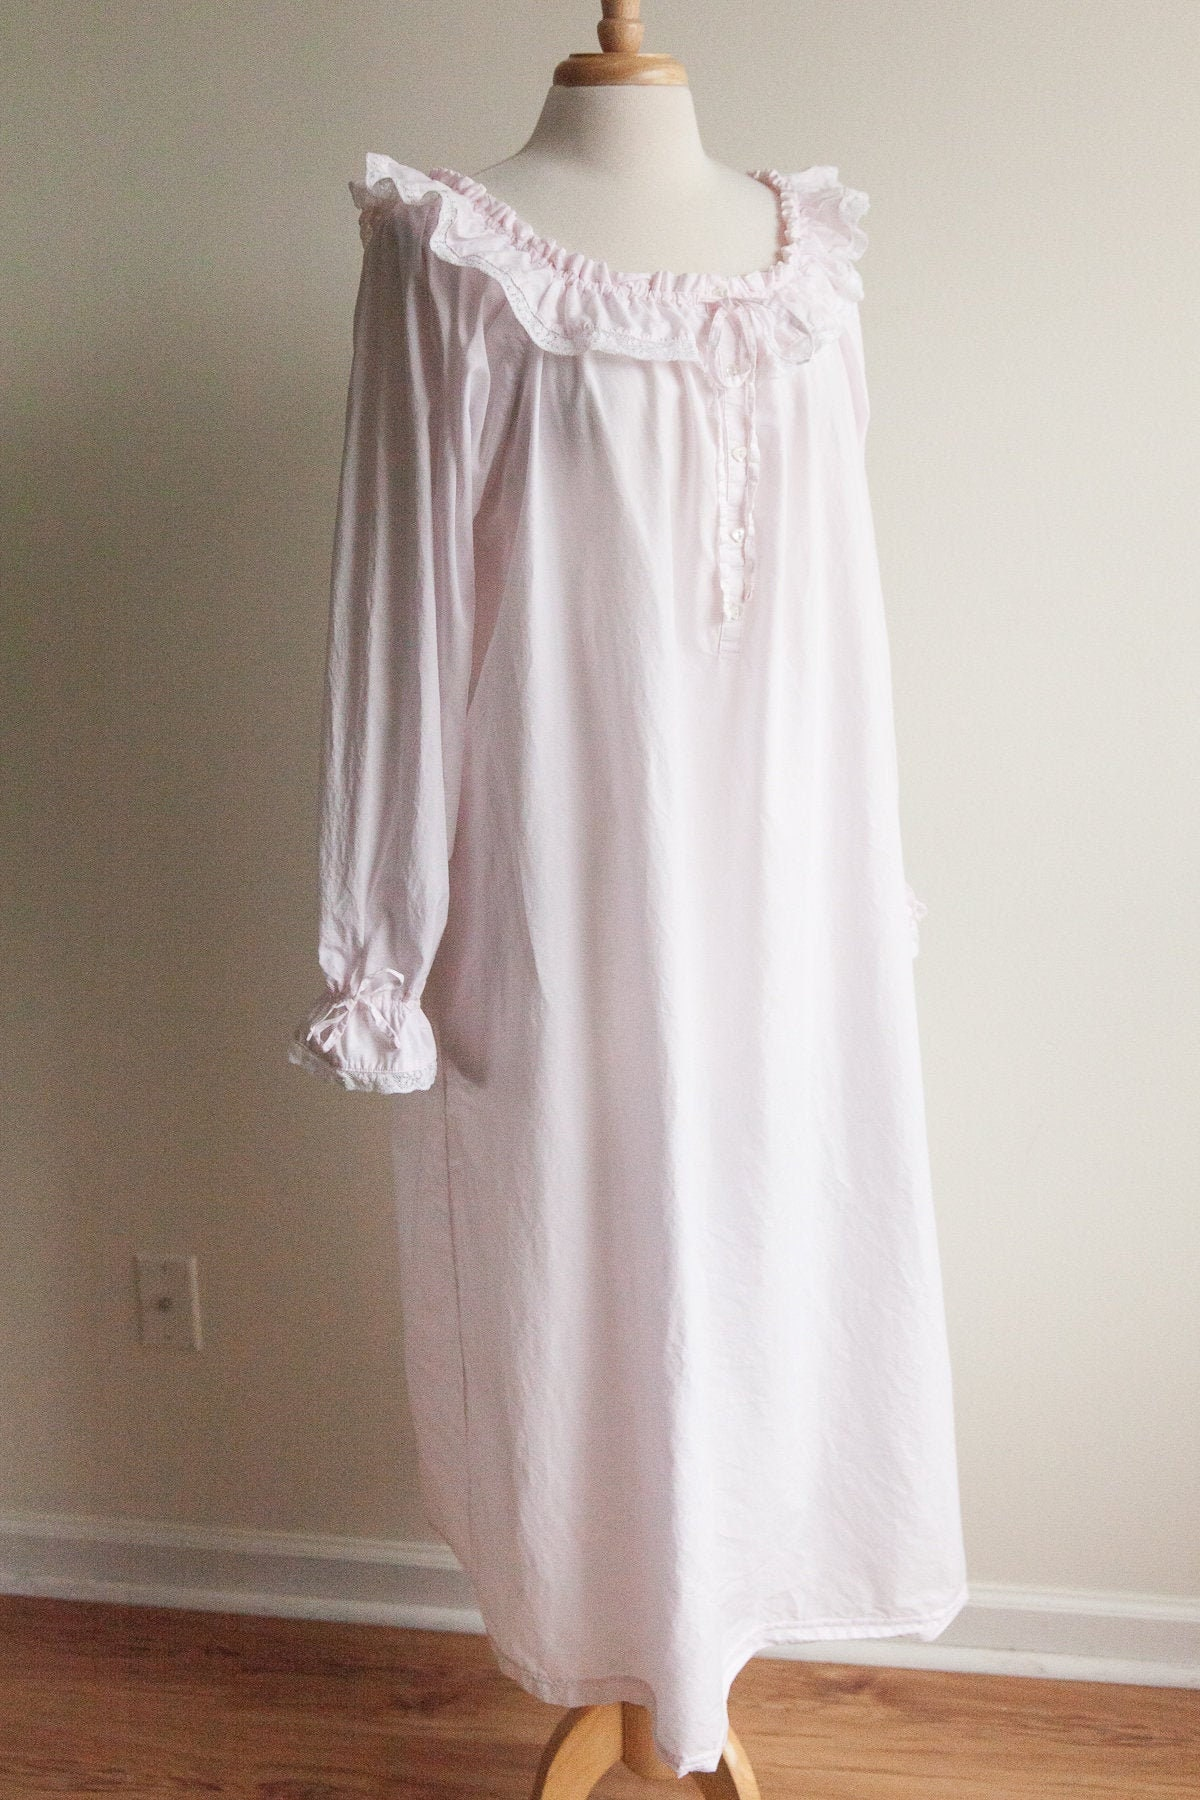 80s Dresses | Casual to Party Dresses Vintage Pale Pink Cotton Nightgown, 1990S 90S Laura Ashley Lace Ruffle Boho Victorian Vibes, Large Xl $0.00 AT vintagedancer.com